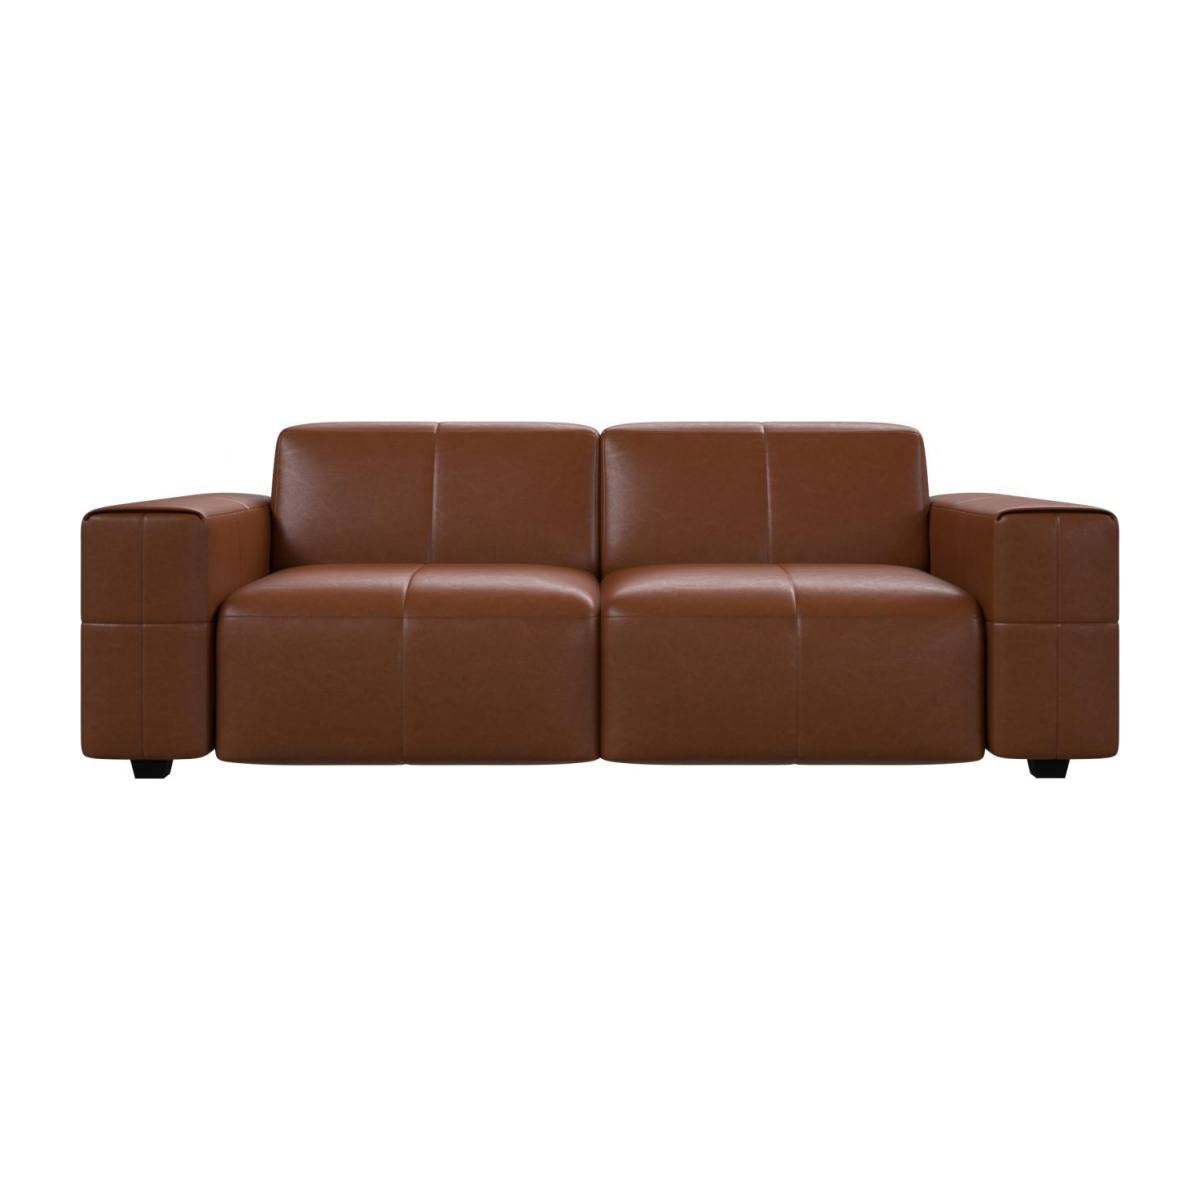 3 seater sofa in Vintage aniline leather, old chestnut n°3